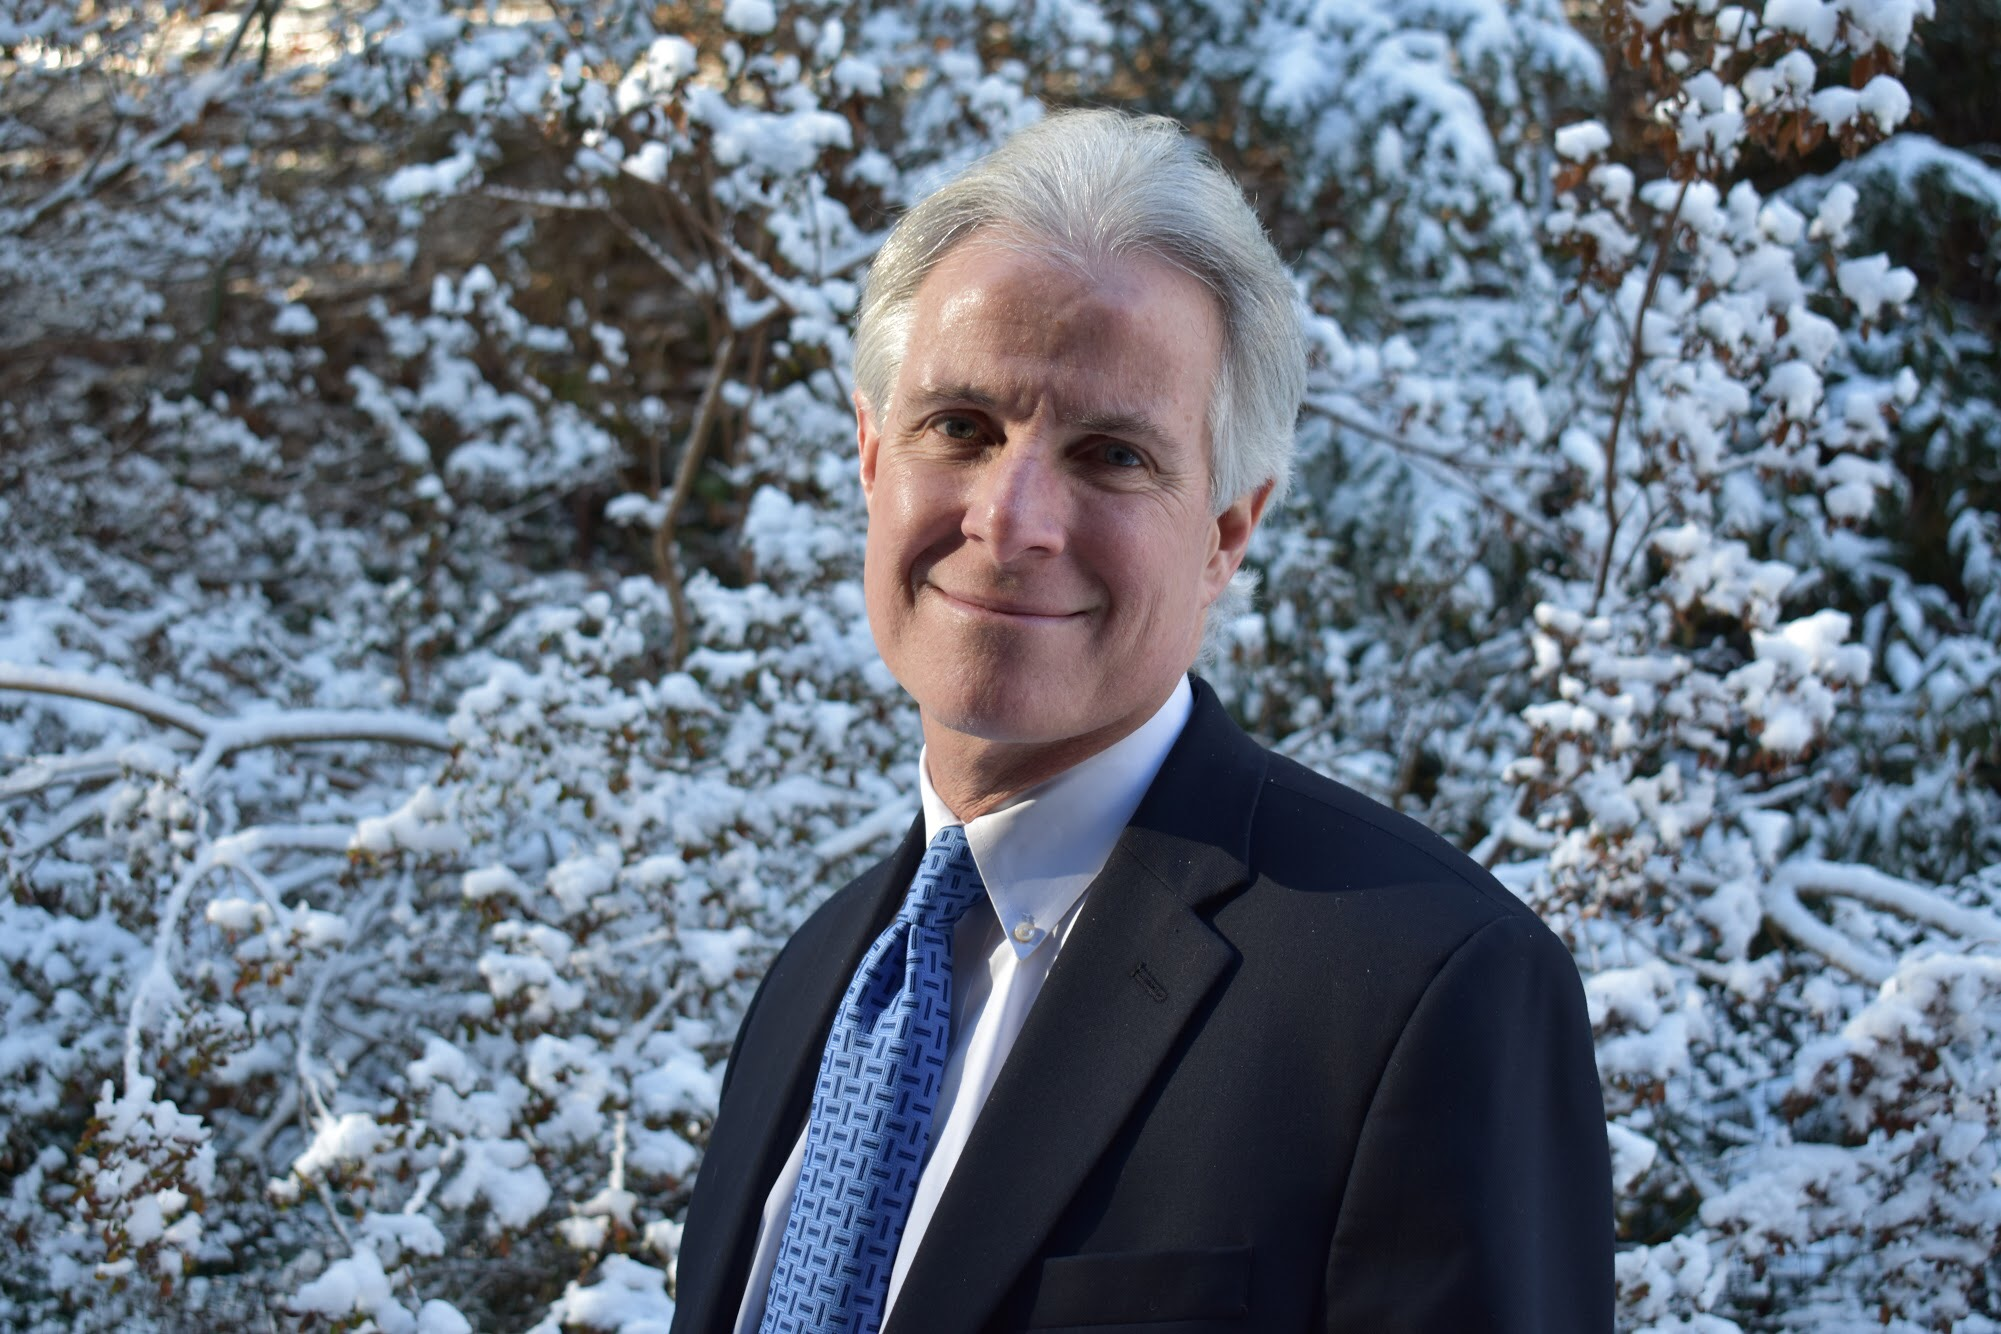 James Shalley, partner at Shalley and Murray, is a highly experienced felony attorney in Westchester or Putnam County.